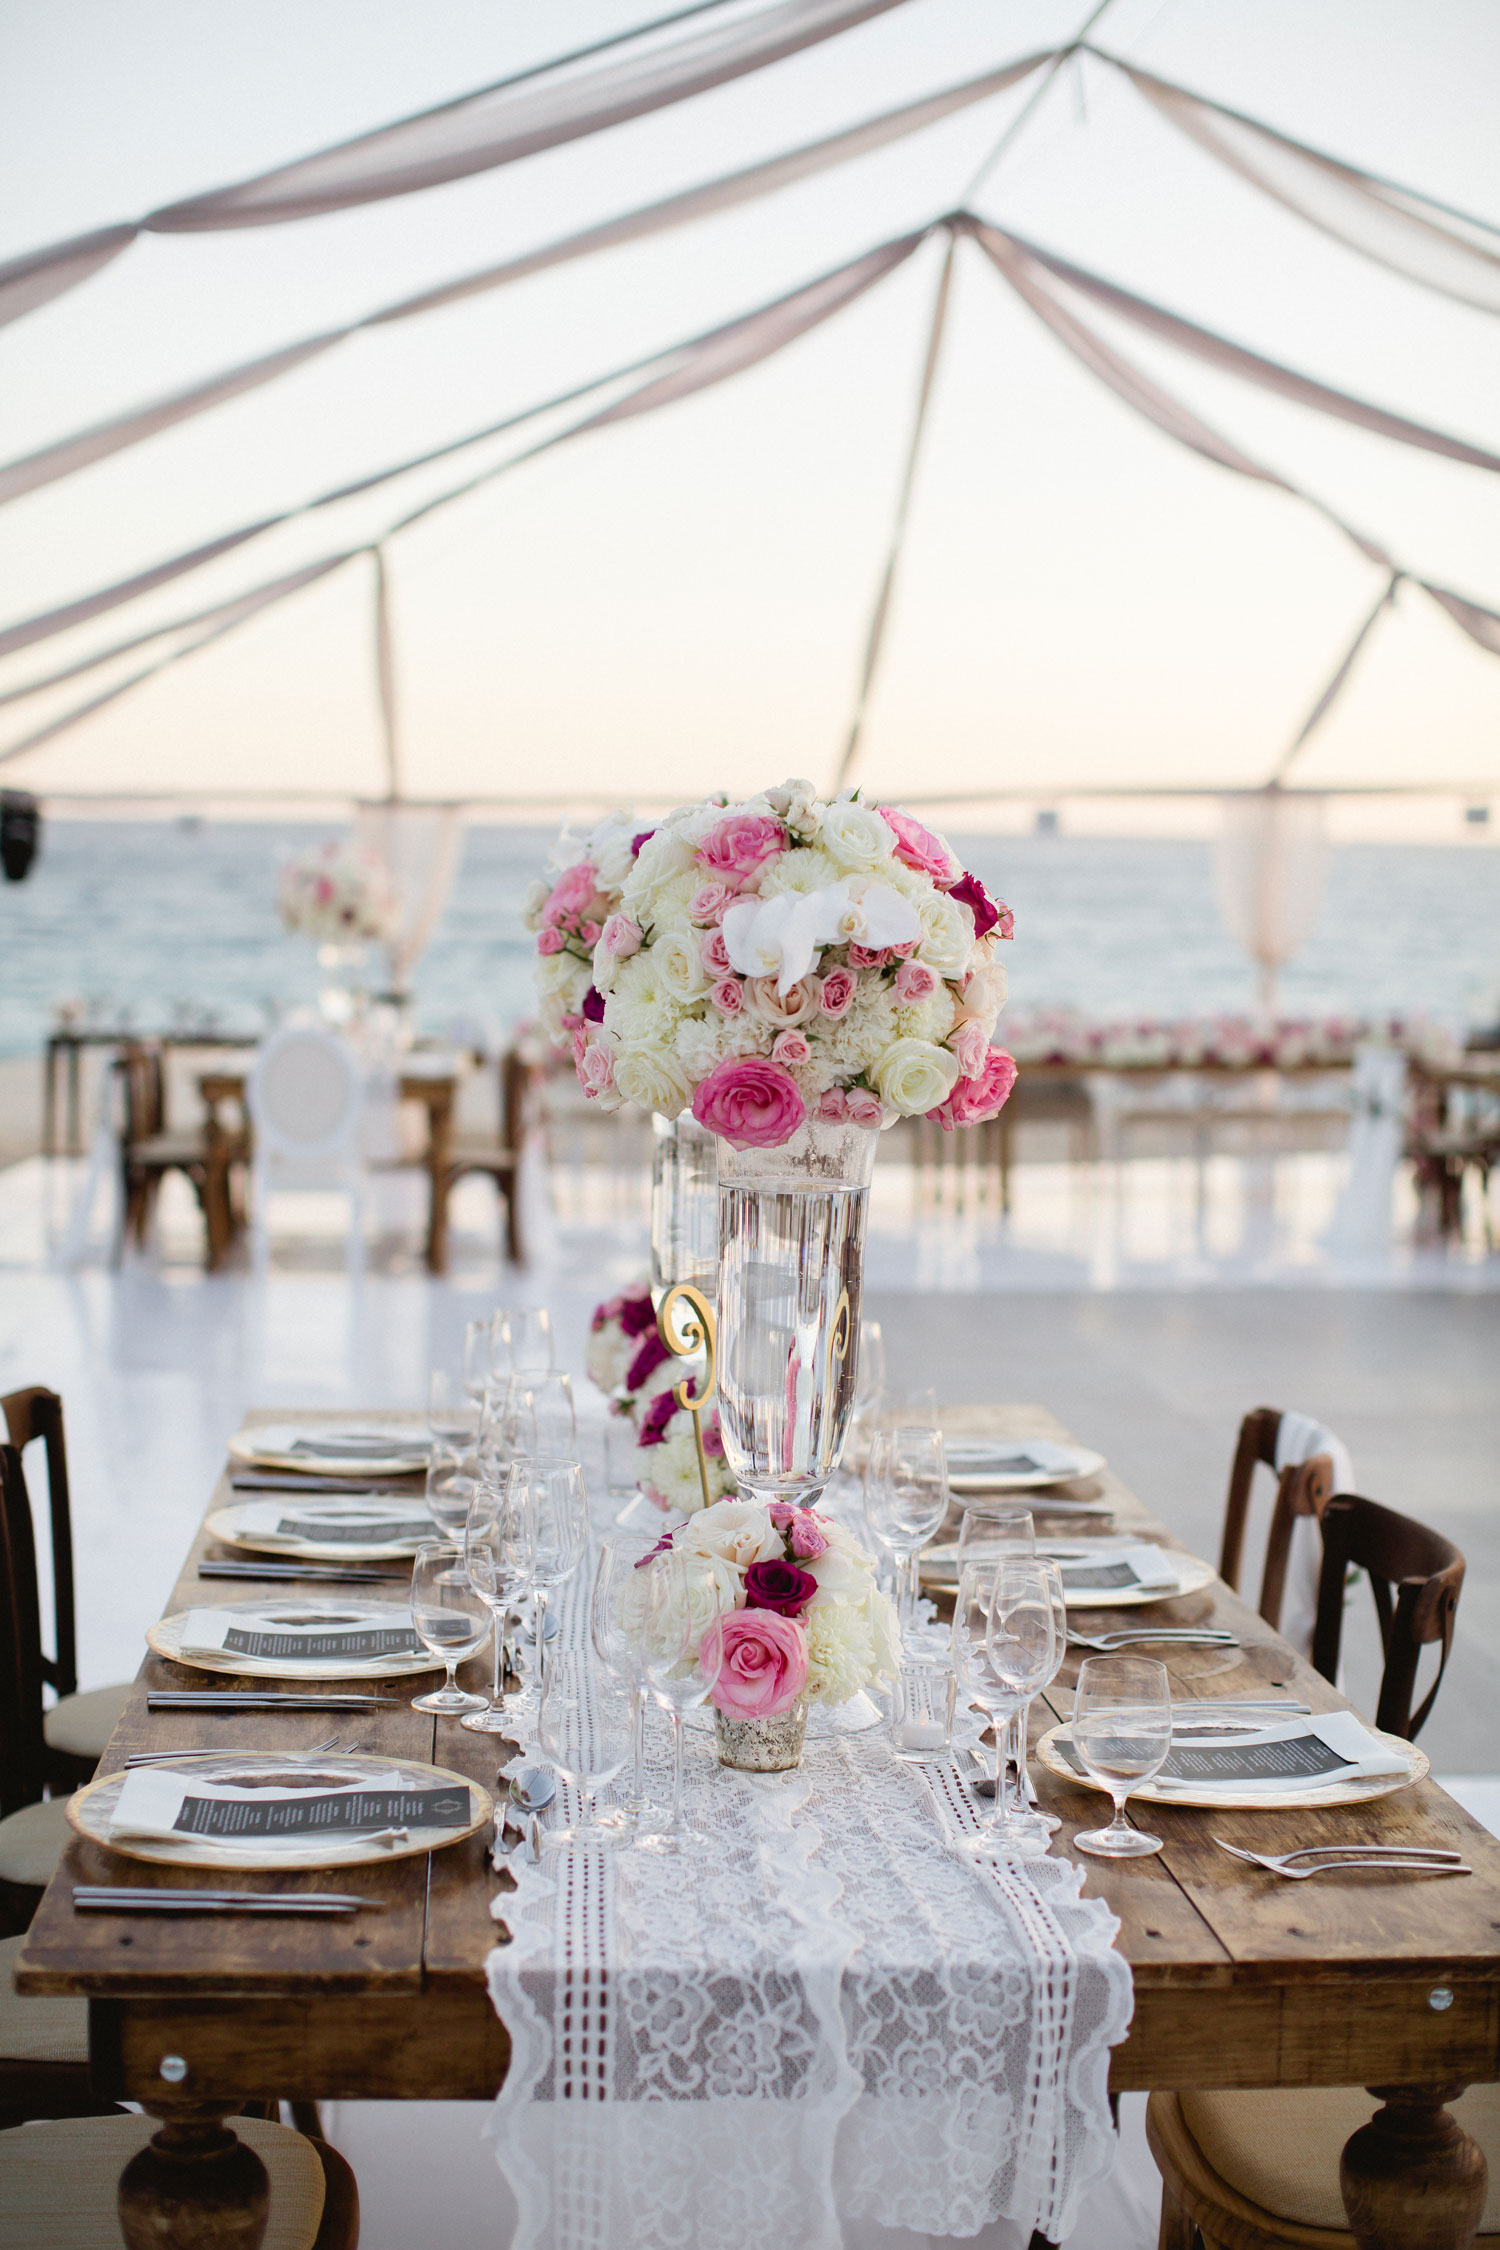 Rustic wedding reception table white tent destination beach wedding in Mexico